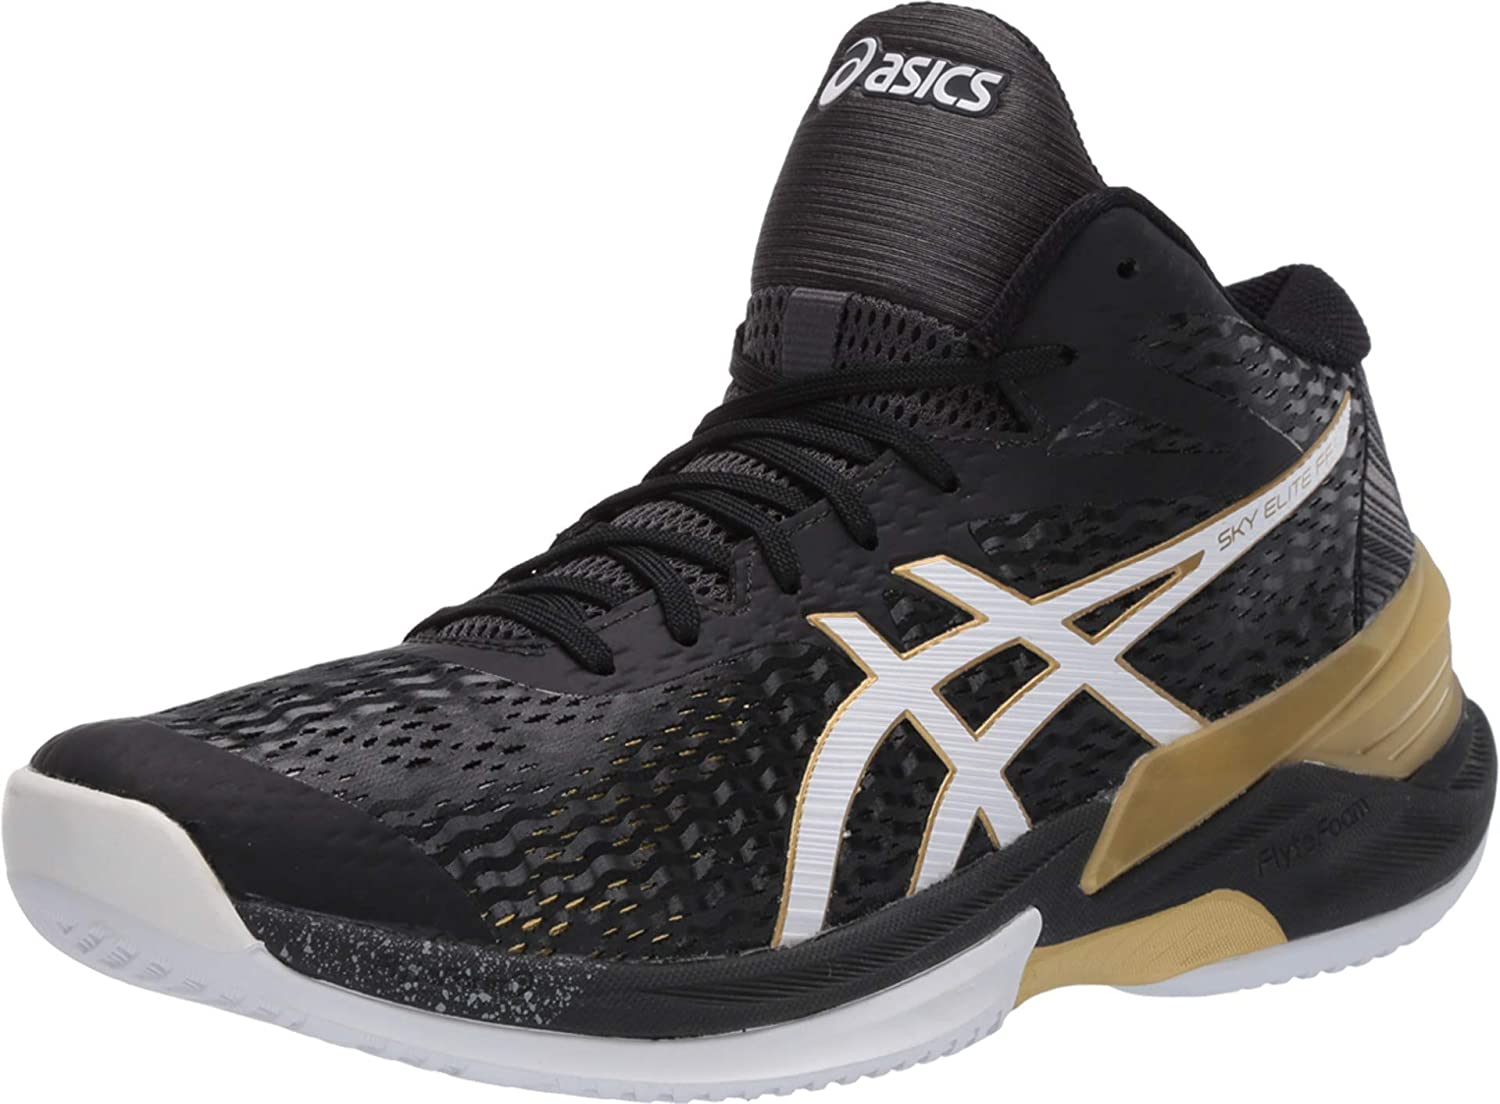 Asics Men/'s SKY ELITE FF MT Volleyball Shoes Indoor Shoes 1051A032 003